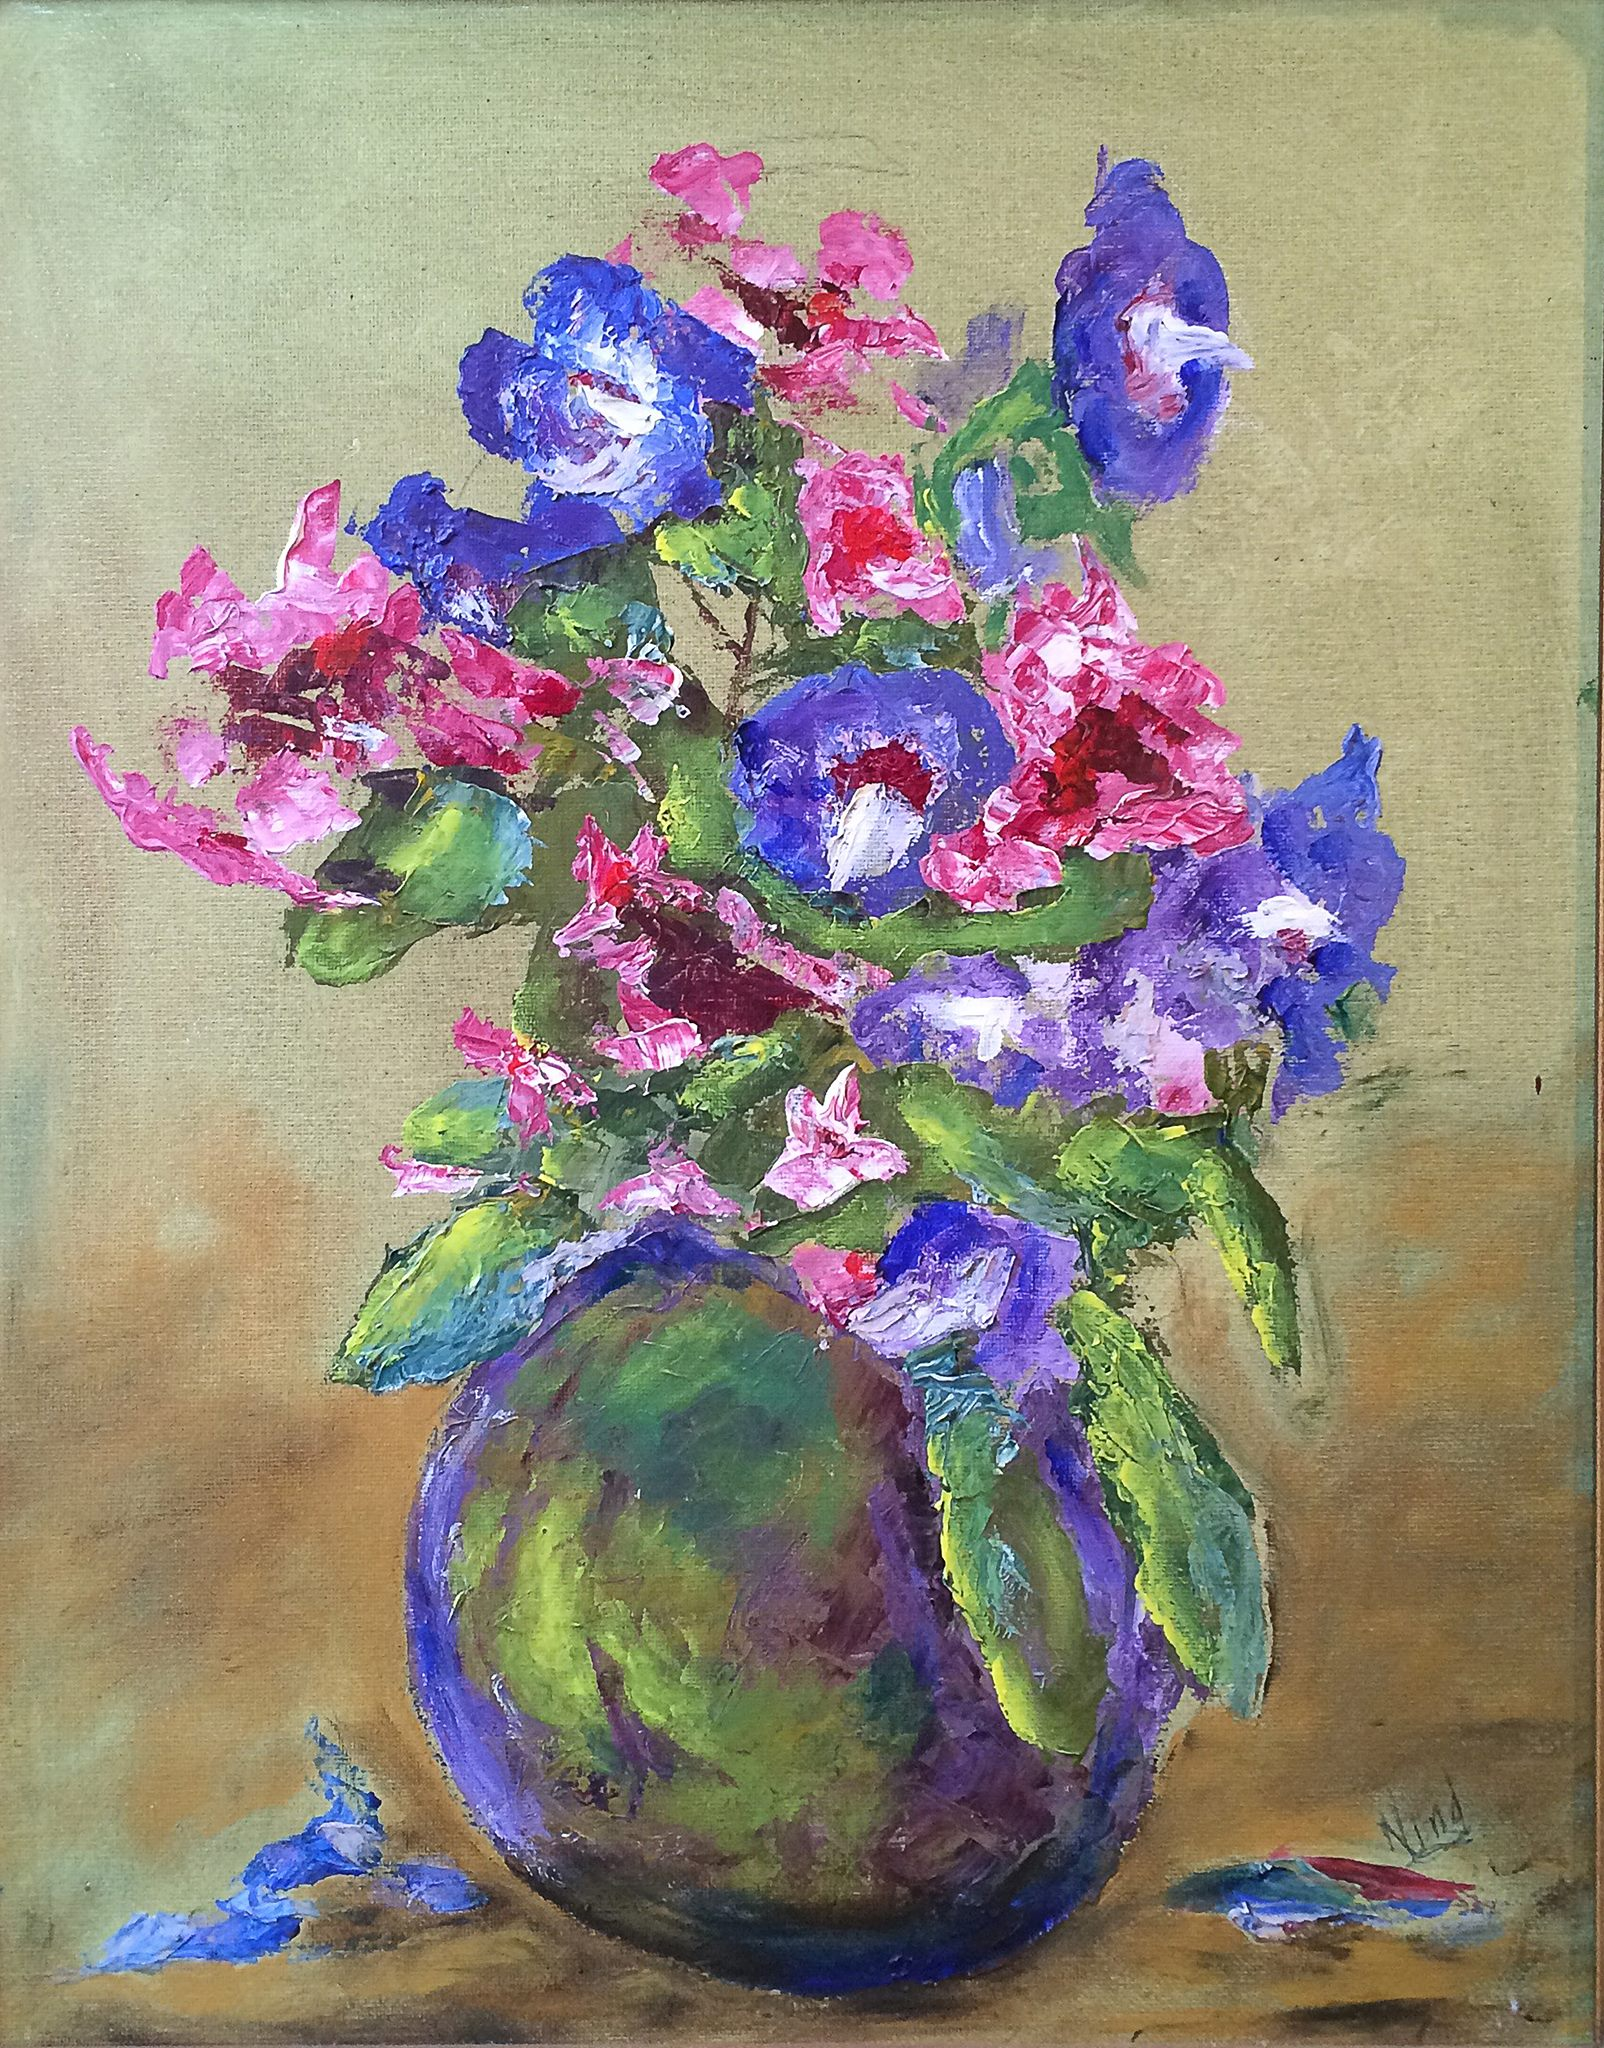 Pot of flowers by Leslie Nind.